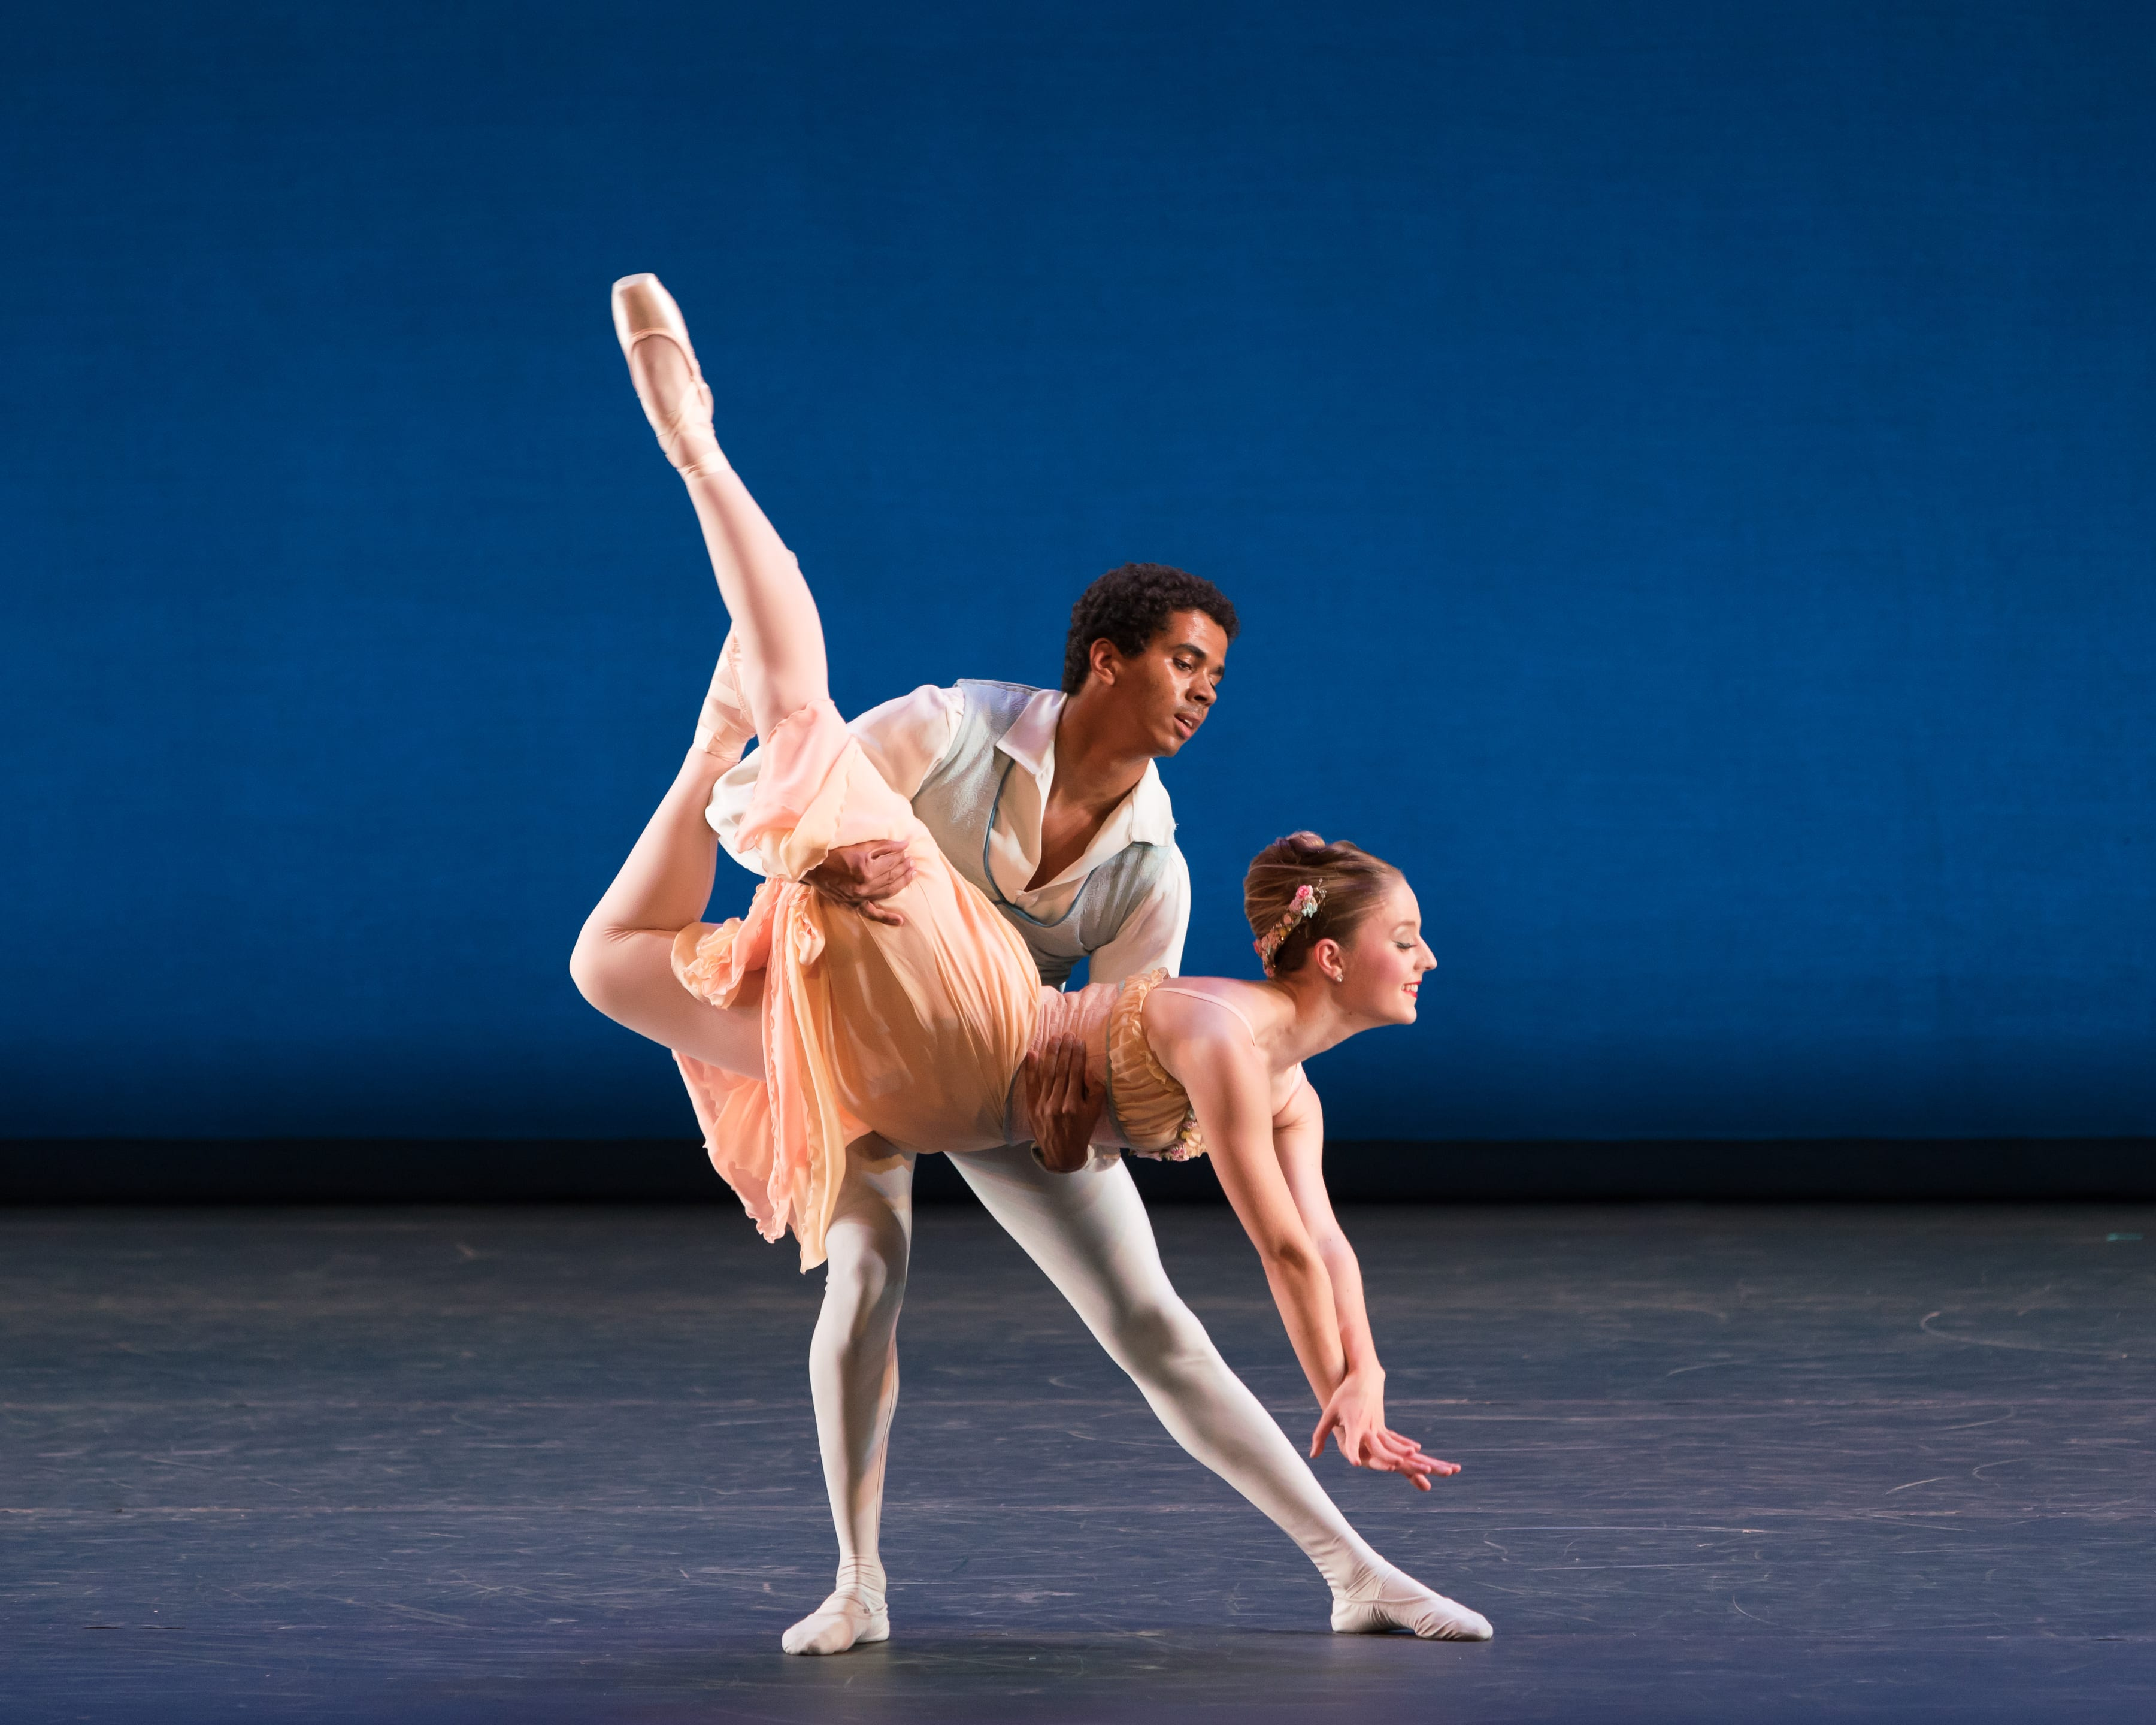 Tschaikovsky's Pas de Deux, an eight-minute display of ballet bravura and technique set to music